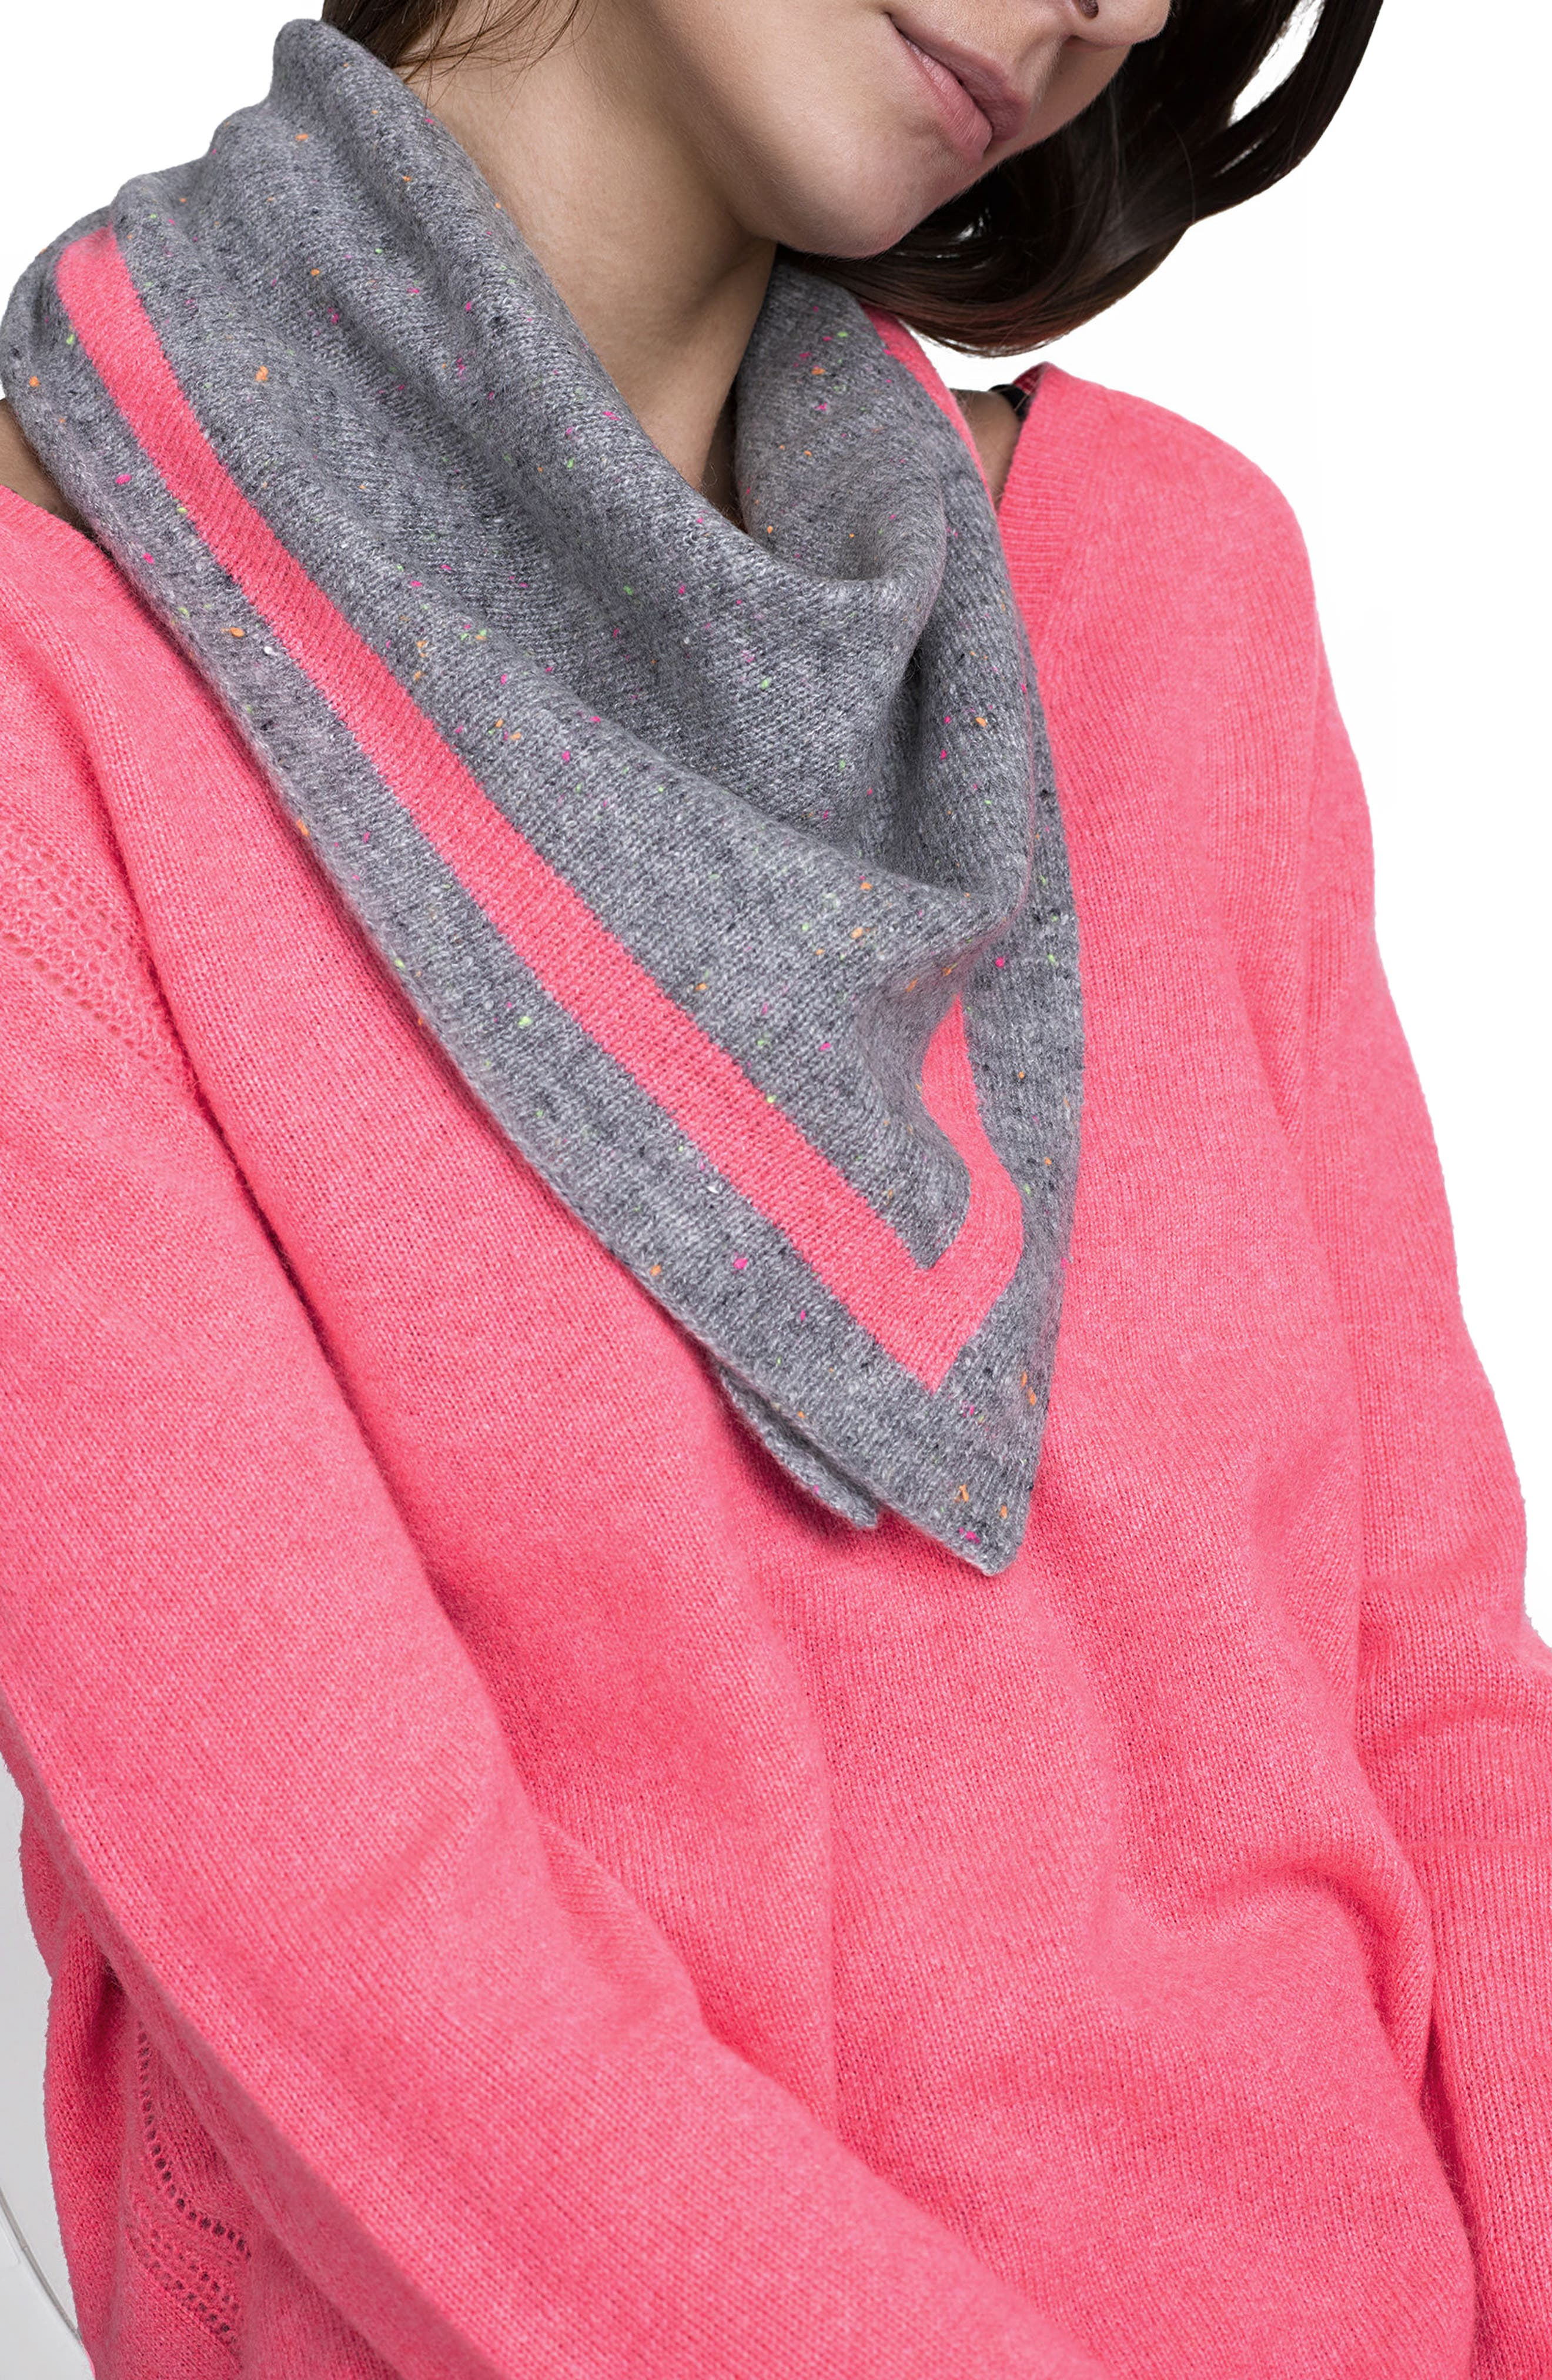 Tipped Cashmere Scarf,                         Main,                         color, Grey Nep/Poppy